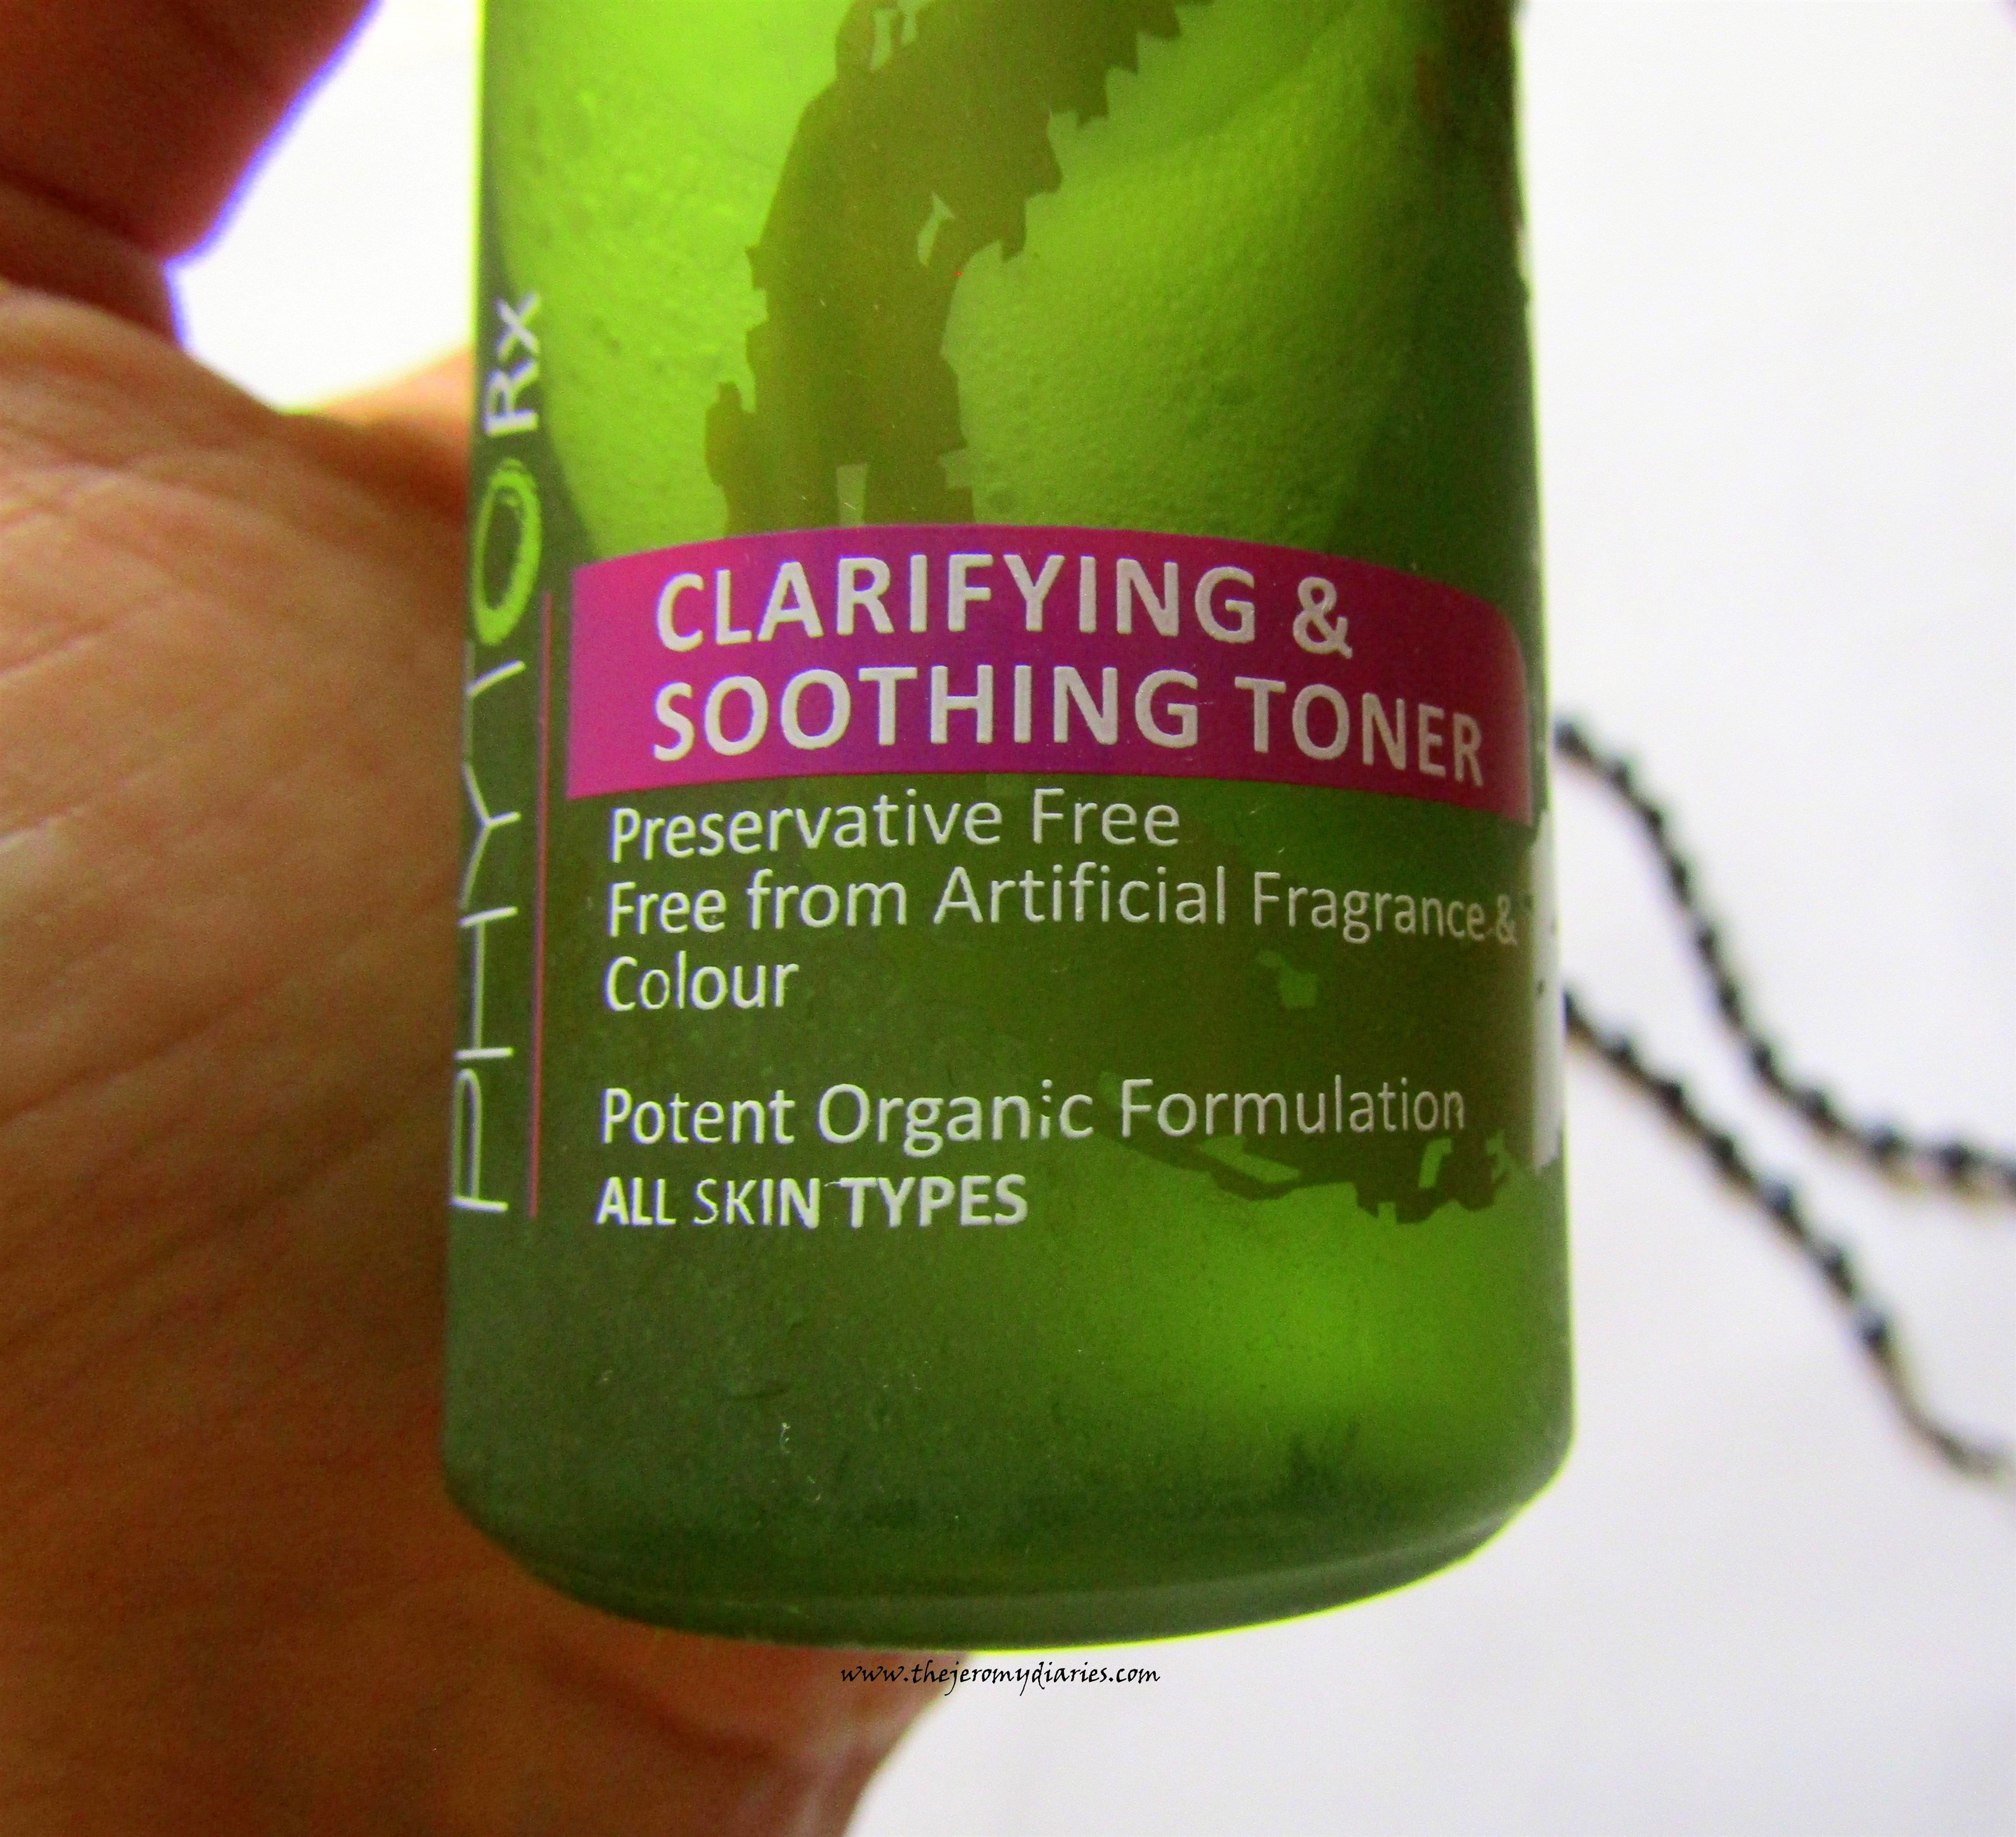 lotus herbals professional clarifying and soothing toner review price and availability the jeromy diaries